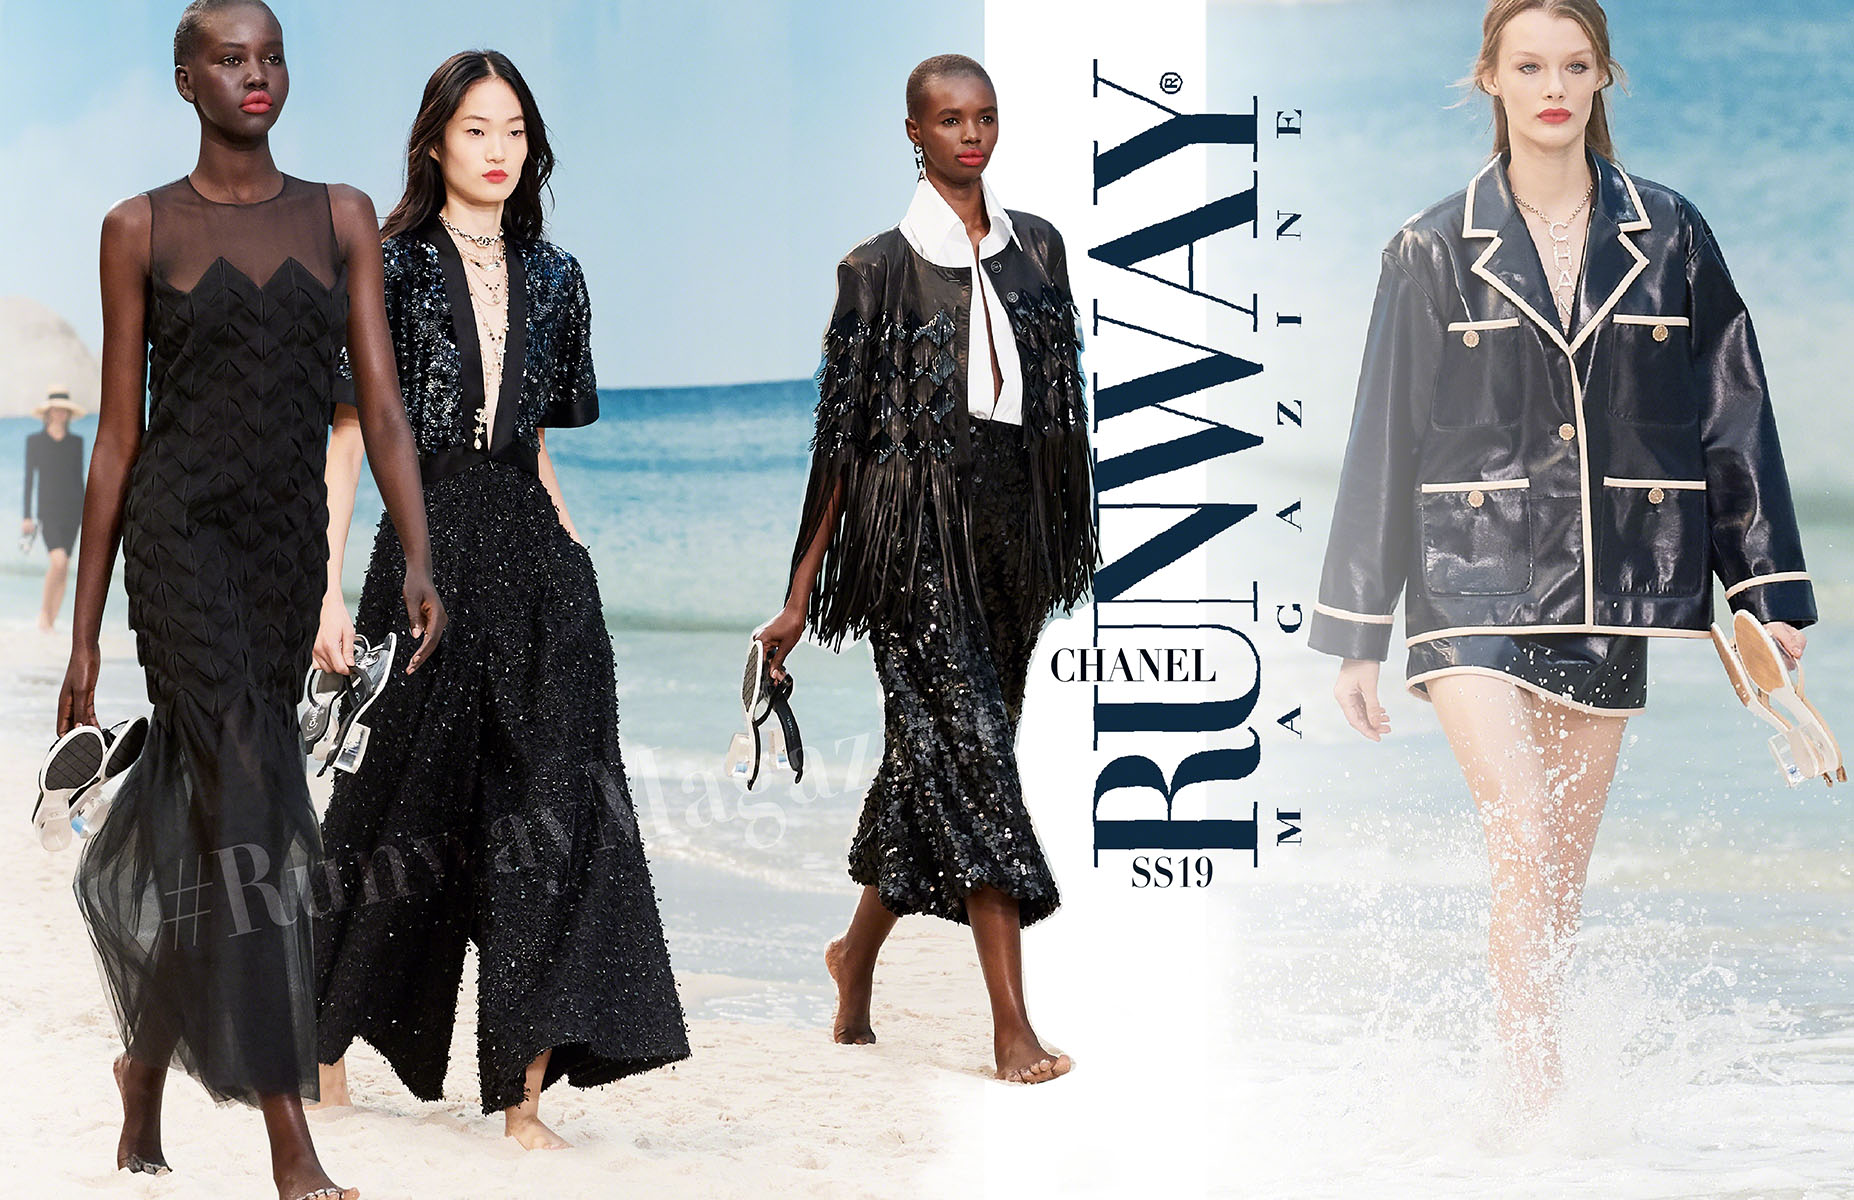 CHANEL RTW Spring Summer 2019 Paris by Runway Magazine